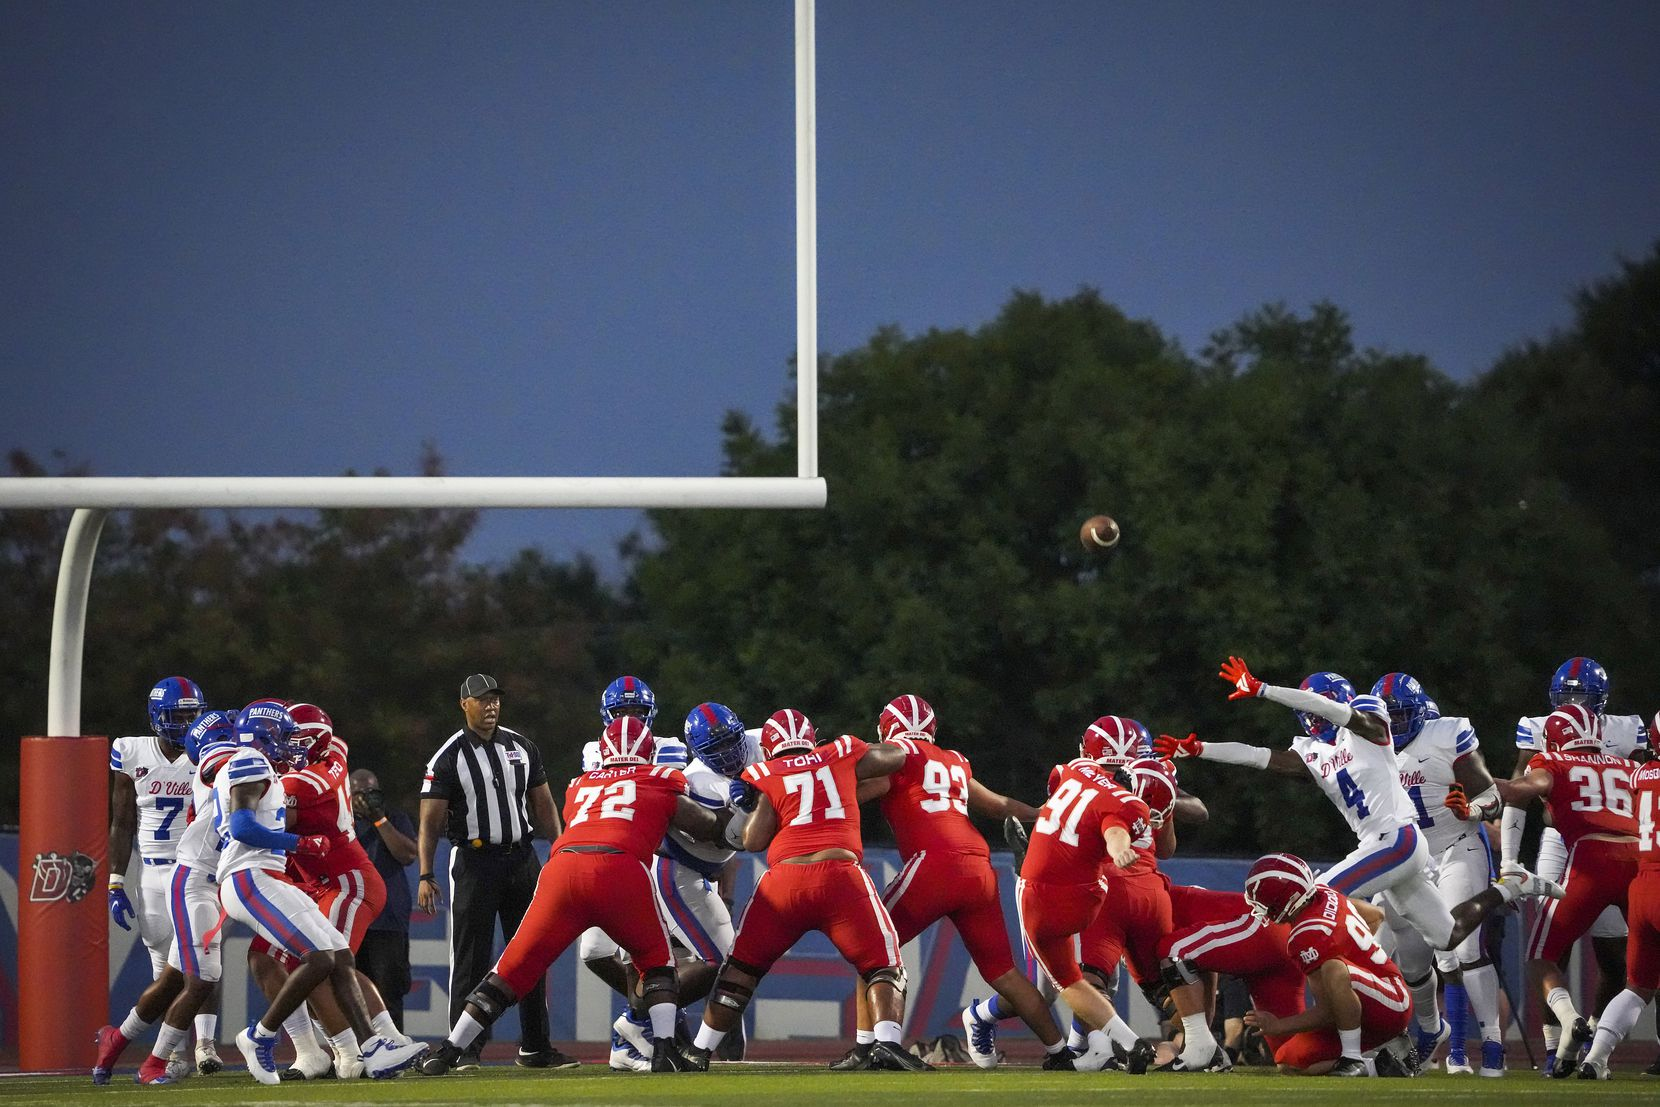 Mater Dei kicker Chase Meyer (91) kicks a field goal past Duncanville defensive back Deldrick Madison (4) during the first half of a high school football game on Friday, Aug. 27, 2021, in Duncanville.